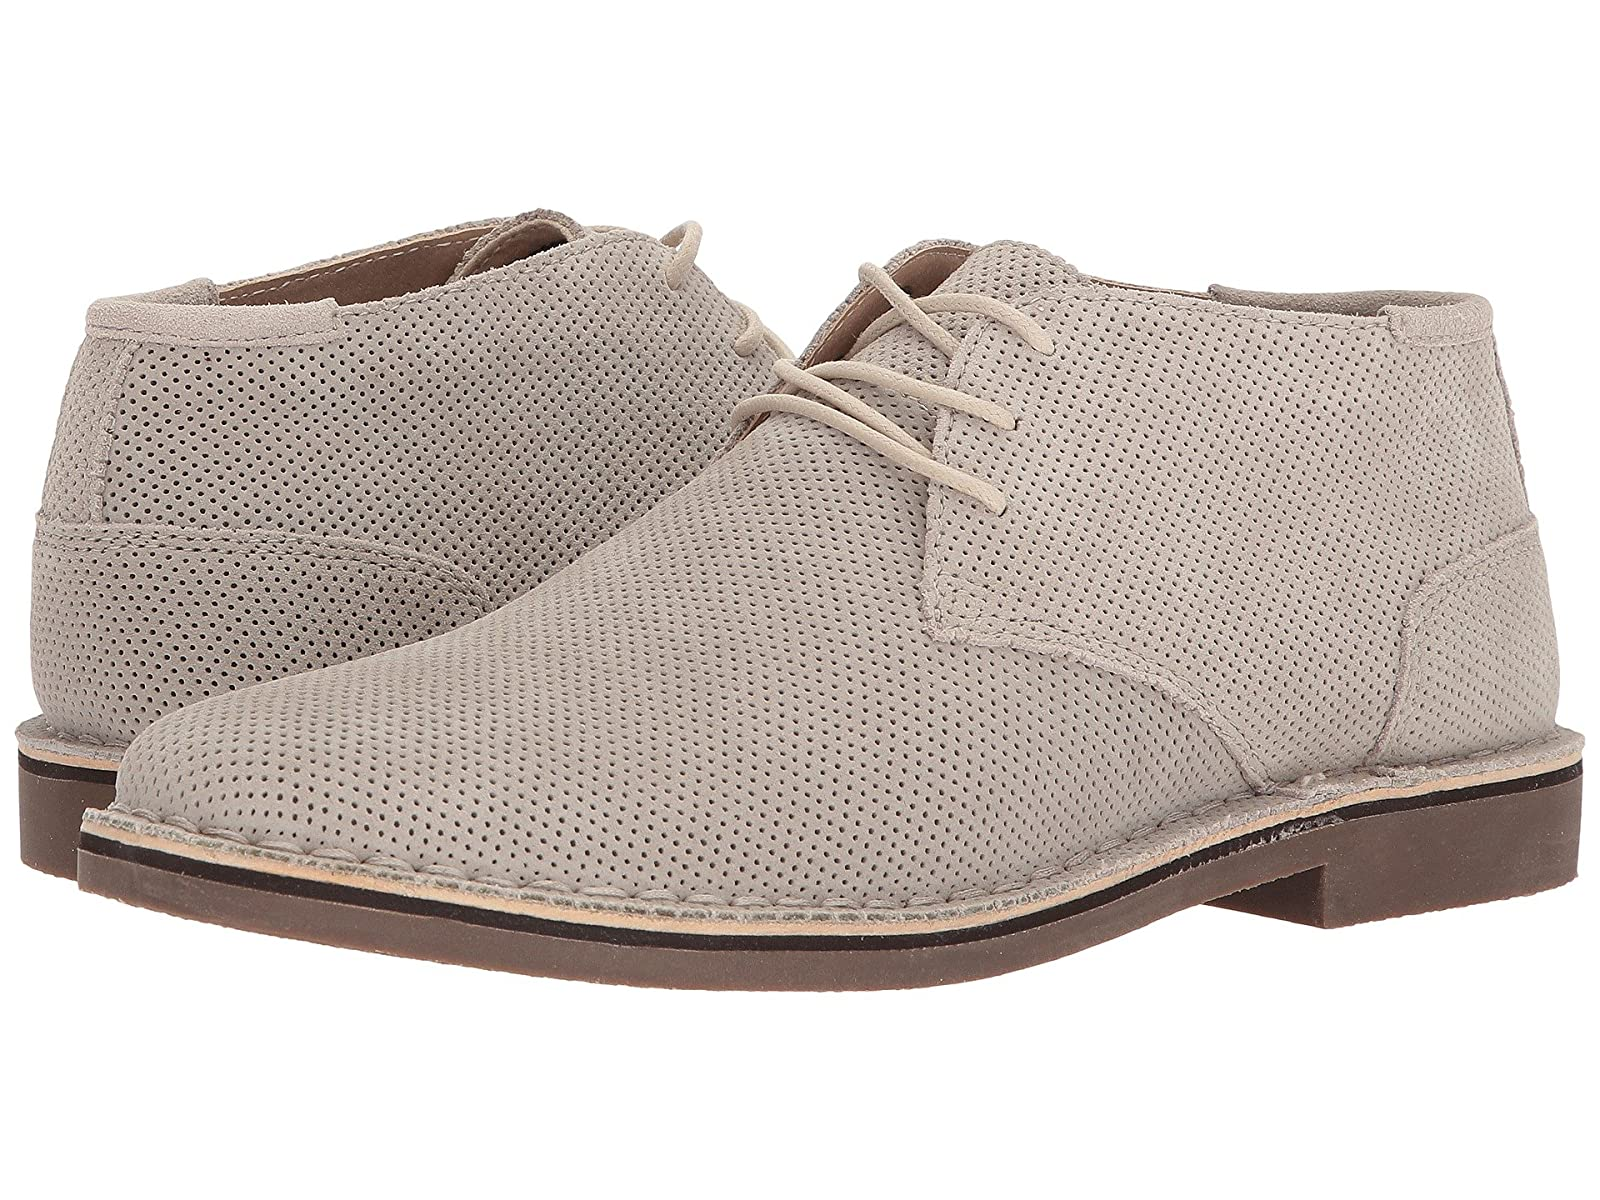 Kenneth Cole Reaction Desert ChukkaAffordable and distinctive shoes